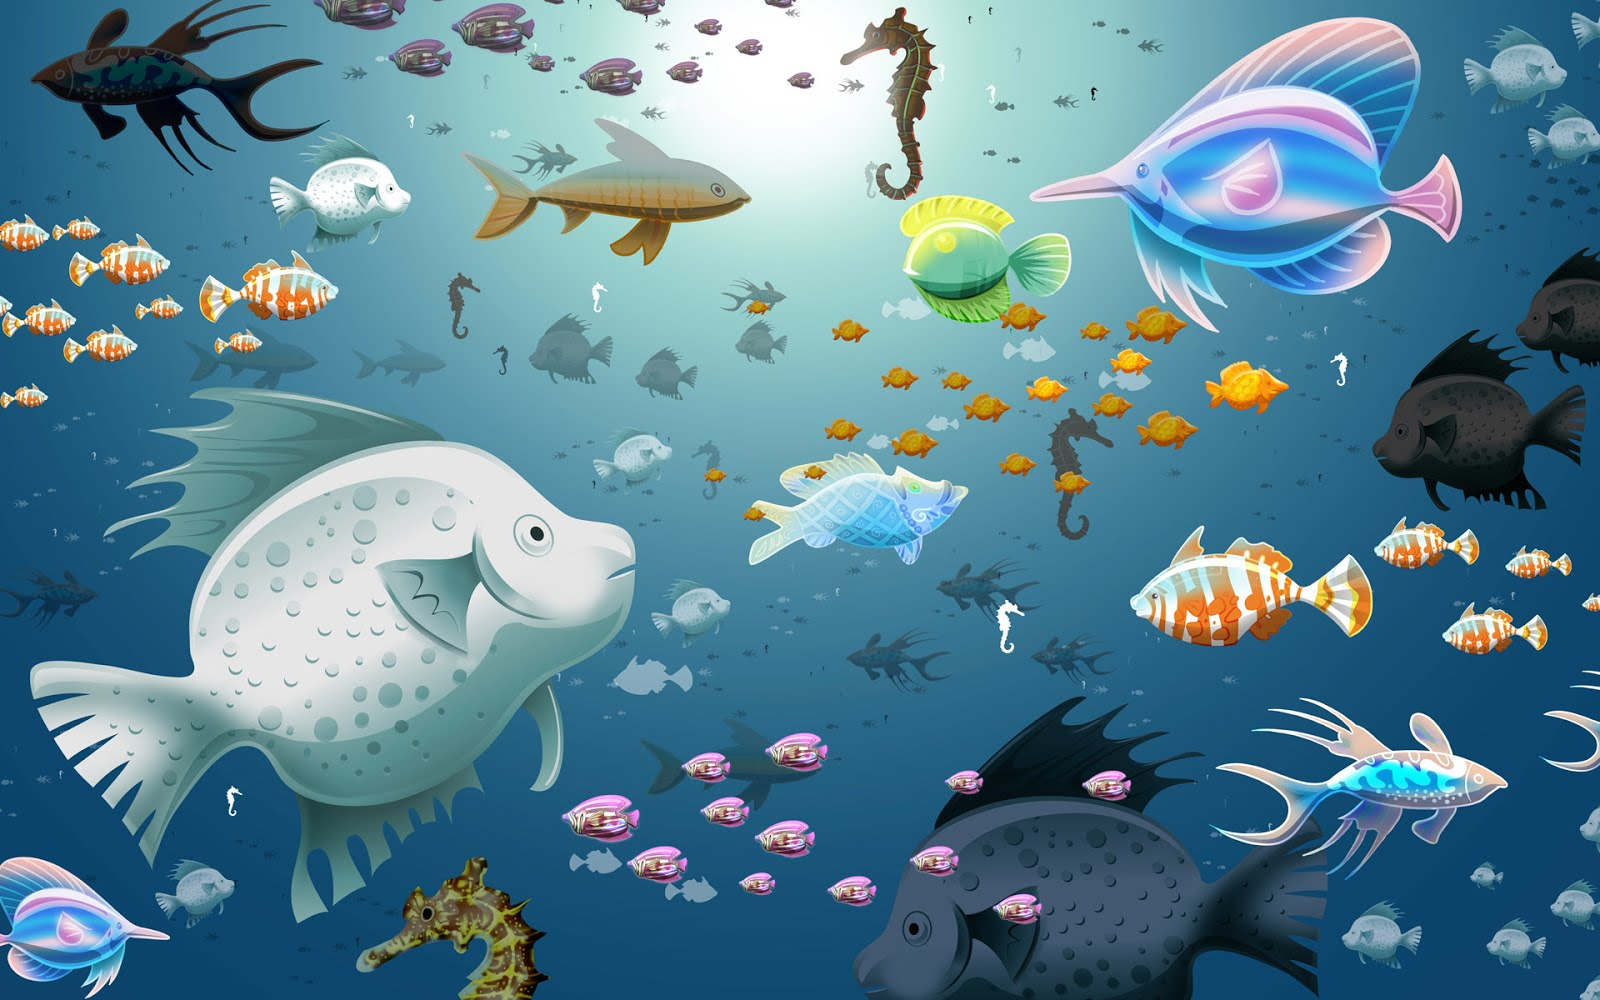 fish tank 3d live wallpaper free download for pc - Fish Aquarium Live Wallpaper for Android